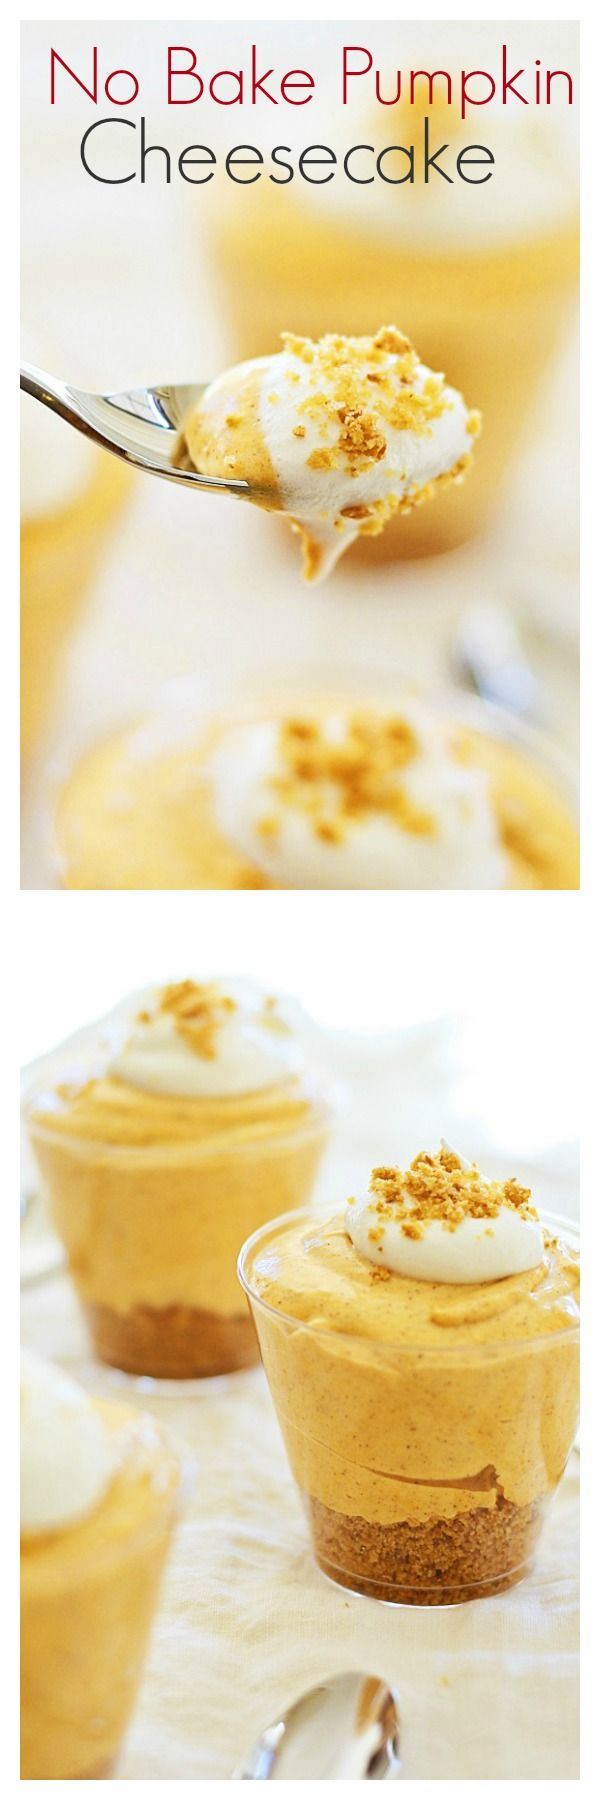 No Bake Pumpkin Cheesecake – BEST fall cheesecake that is sweet, creamy & crazy GOOD you'll want more. Recipe by @afamilyfeast | rasamalaysia.com.